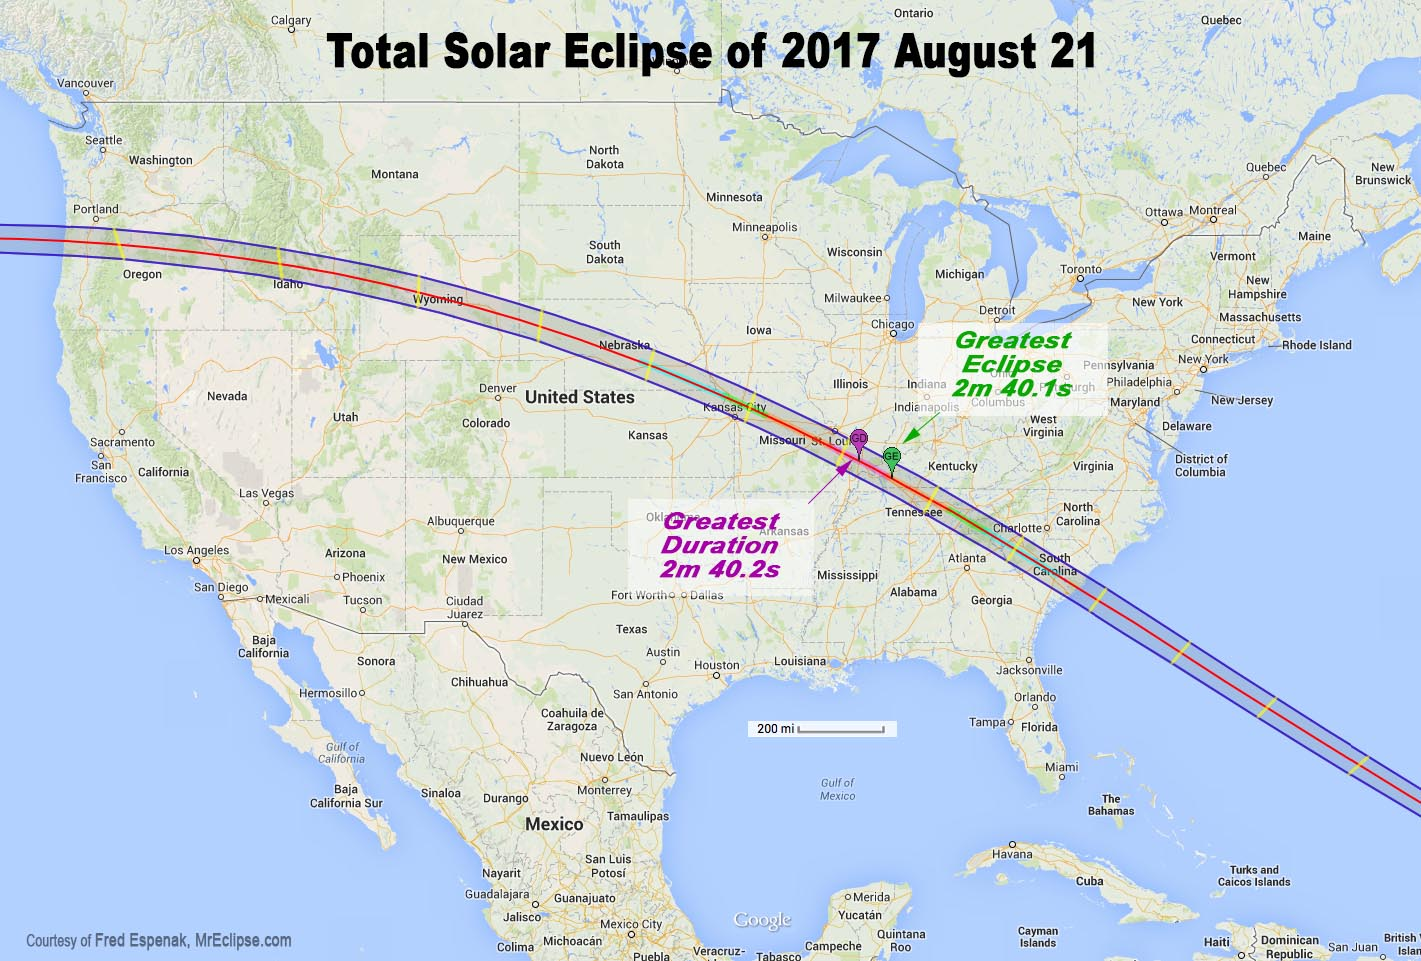 Apod 2016 August 21 Map Of Total Solar Eclipse Path In 2017 August